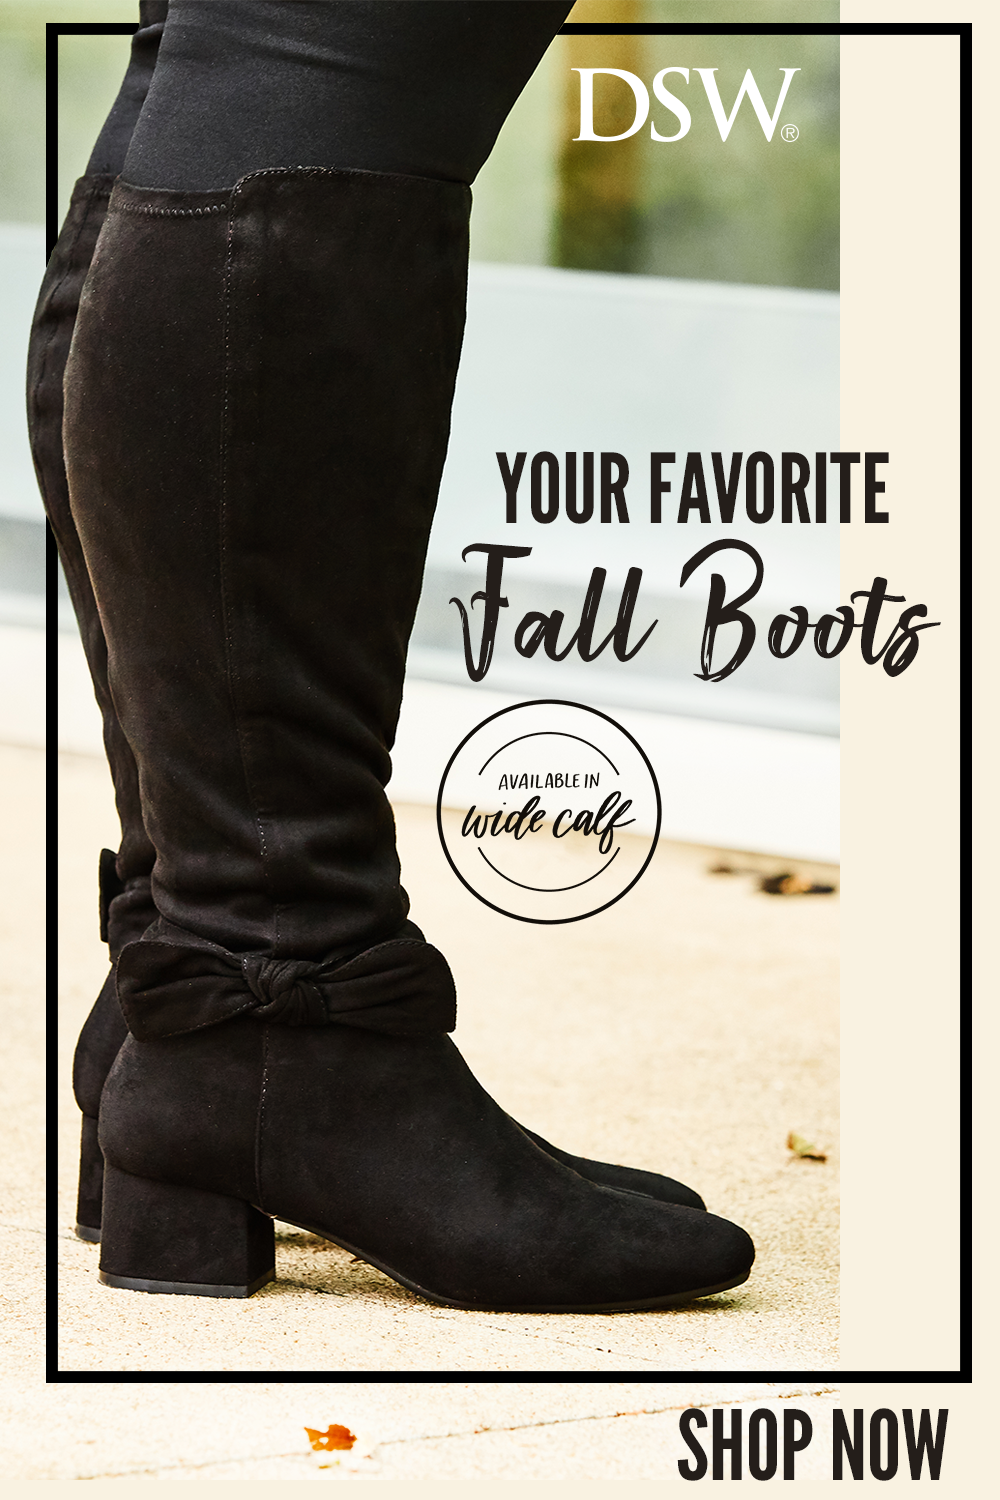 Meet your new favorite fall boots. This chic style hugs the calf perfectly,  and is available in a wide fit for all shapes and sizes.